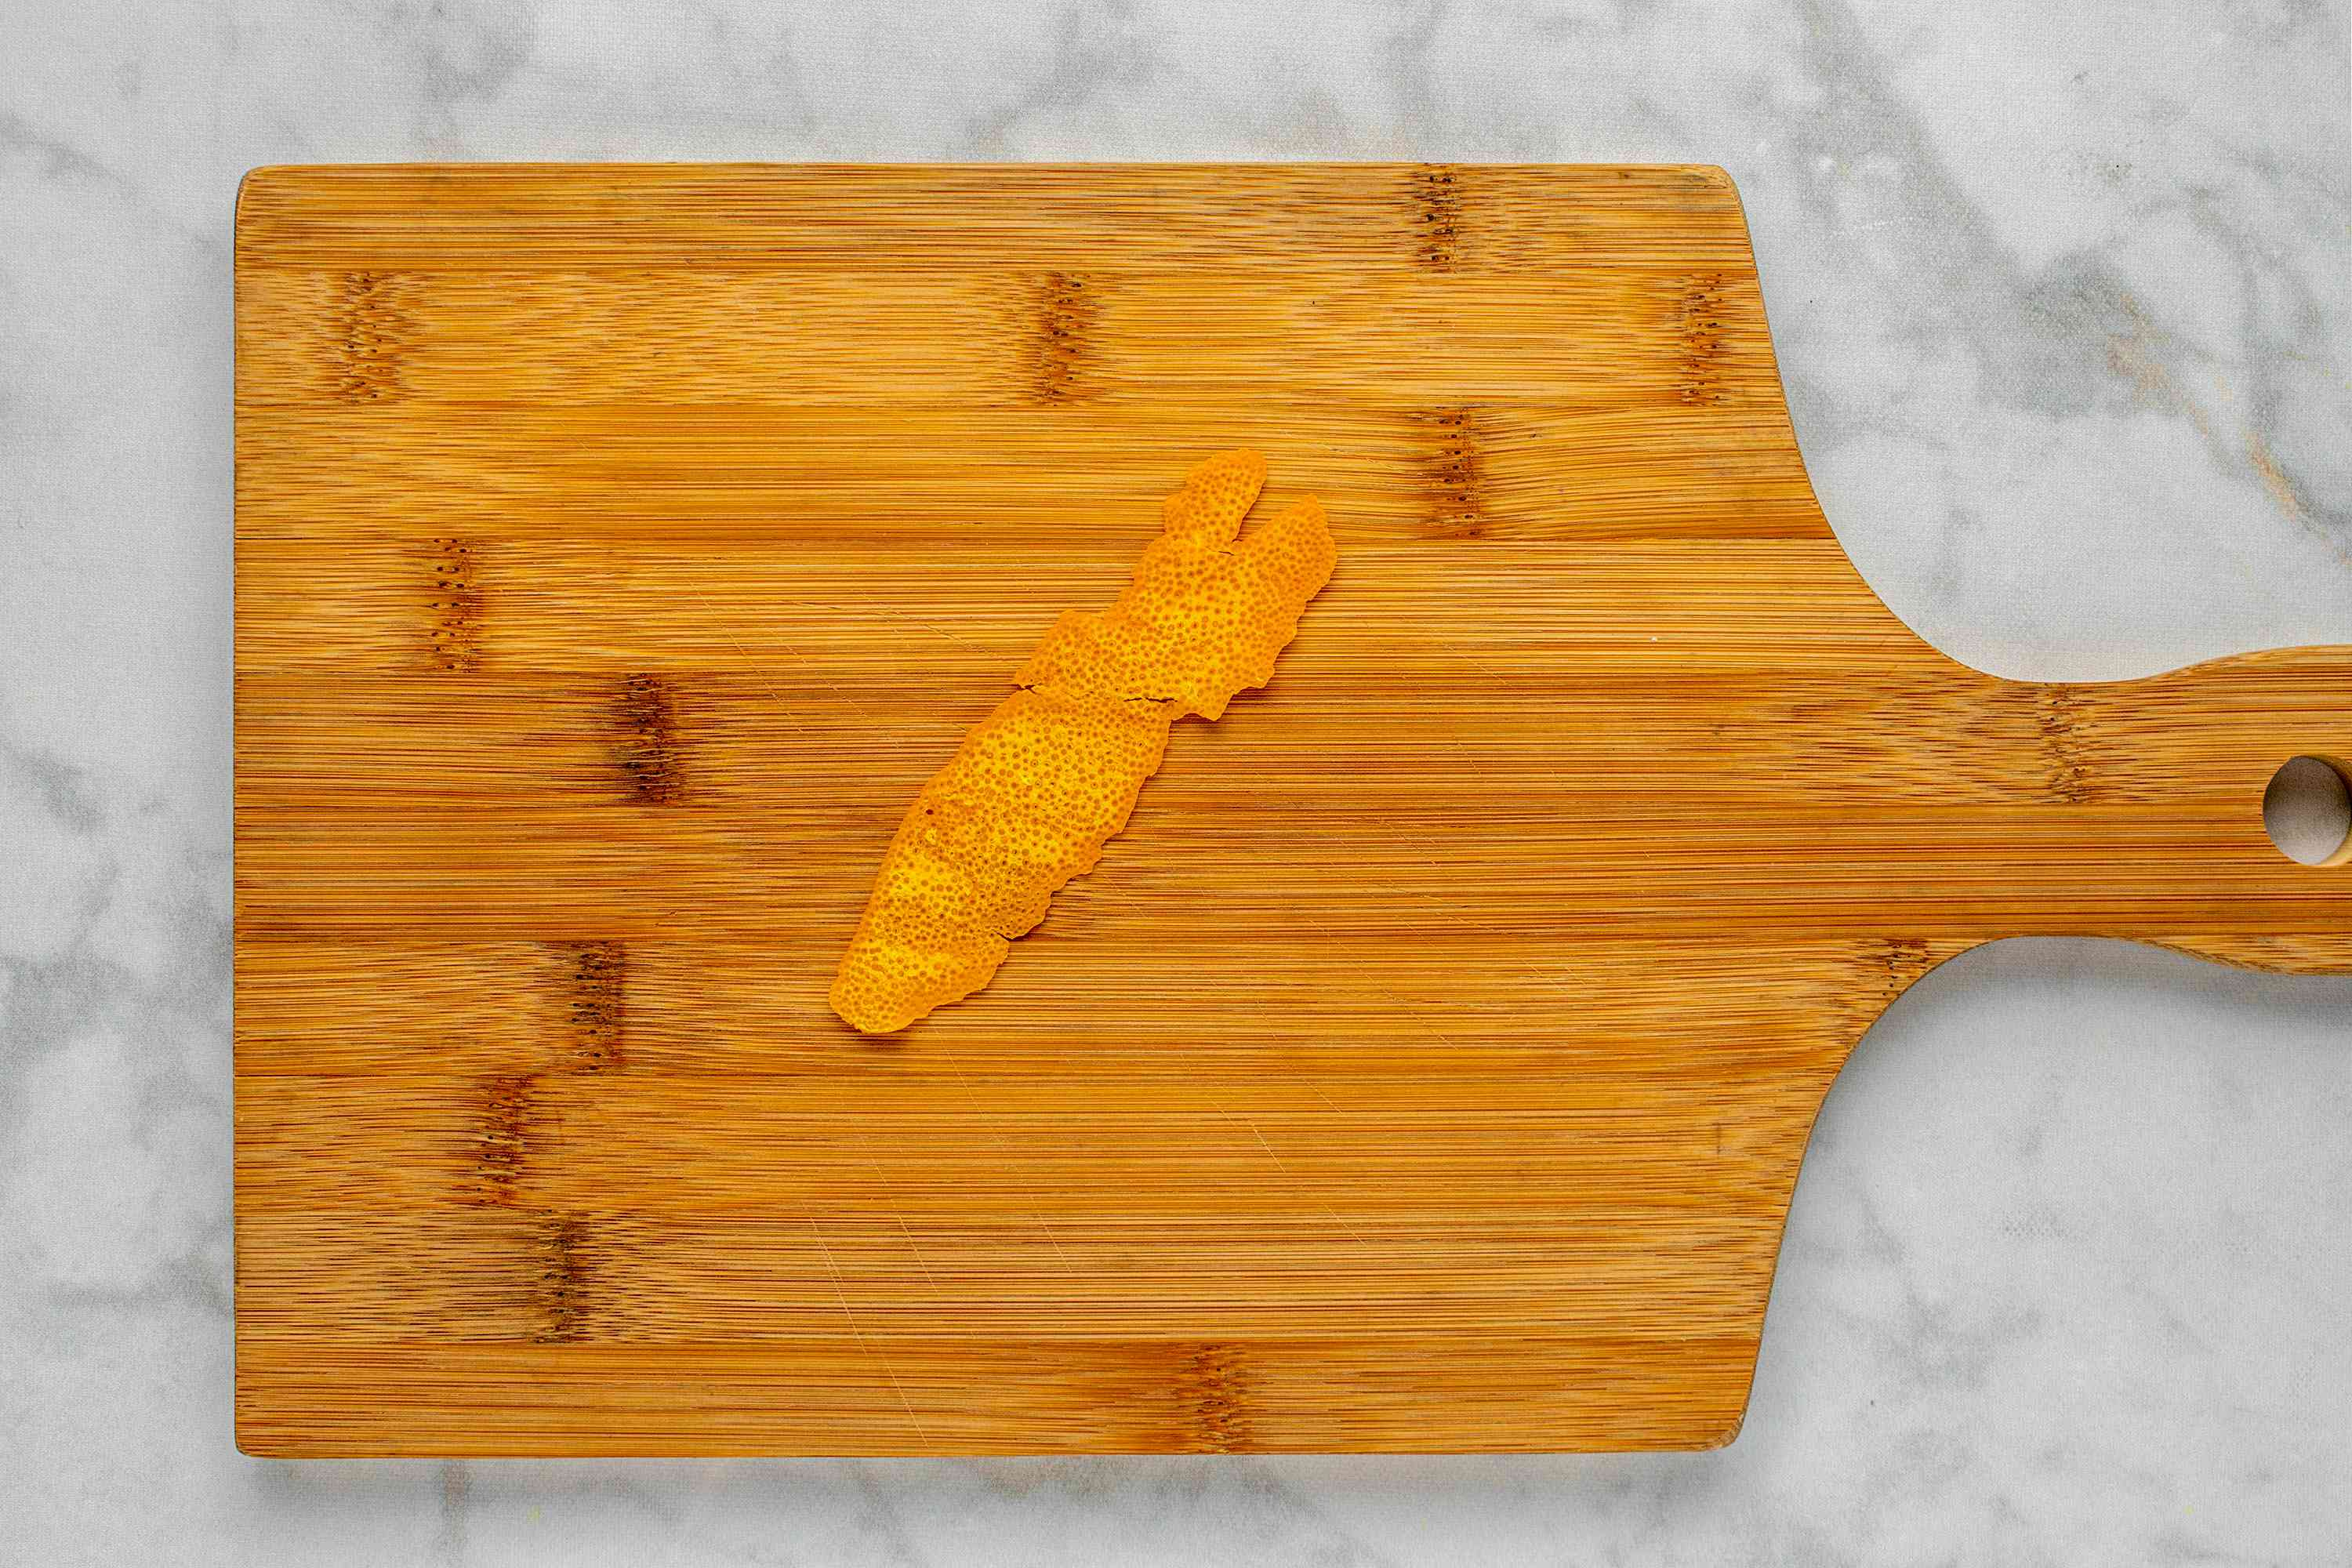 remove white pith from the orange zest